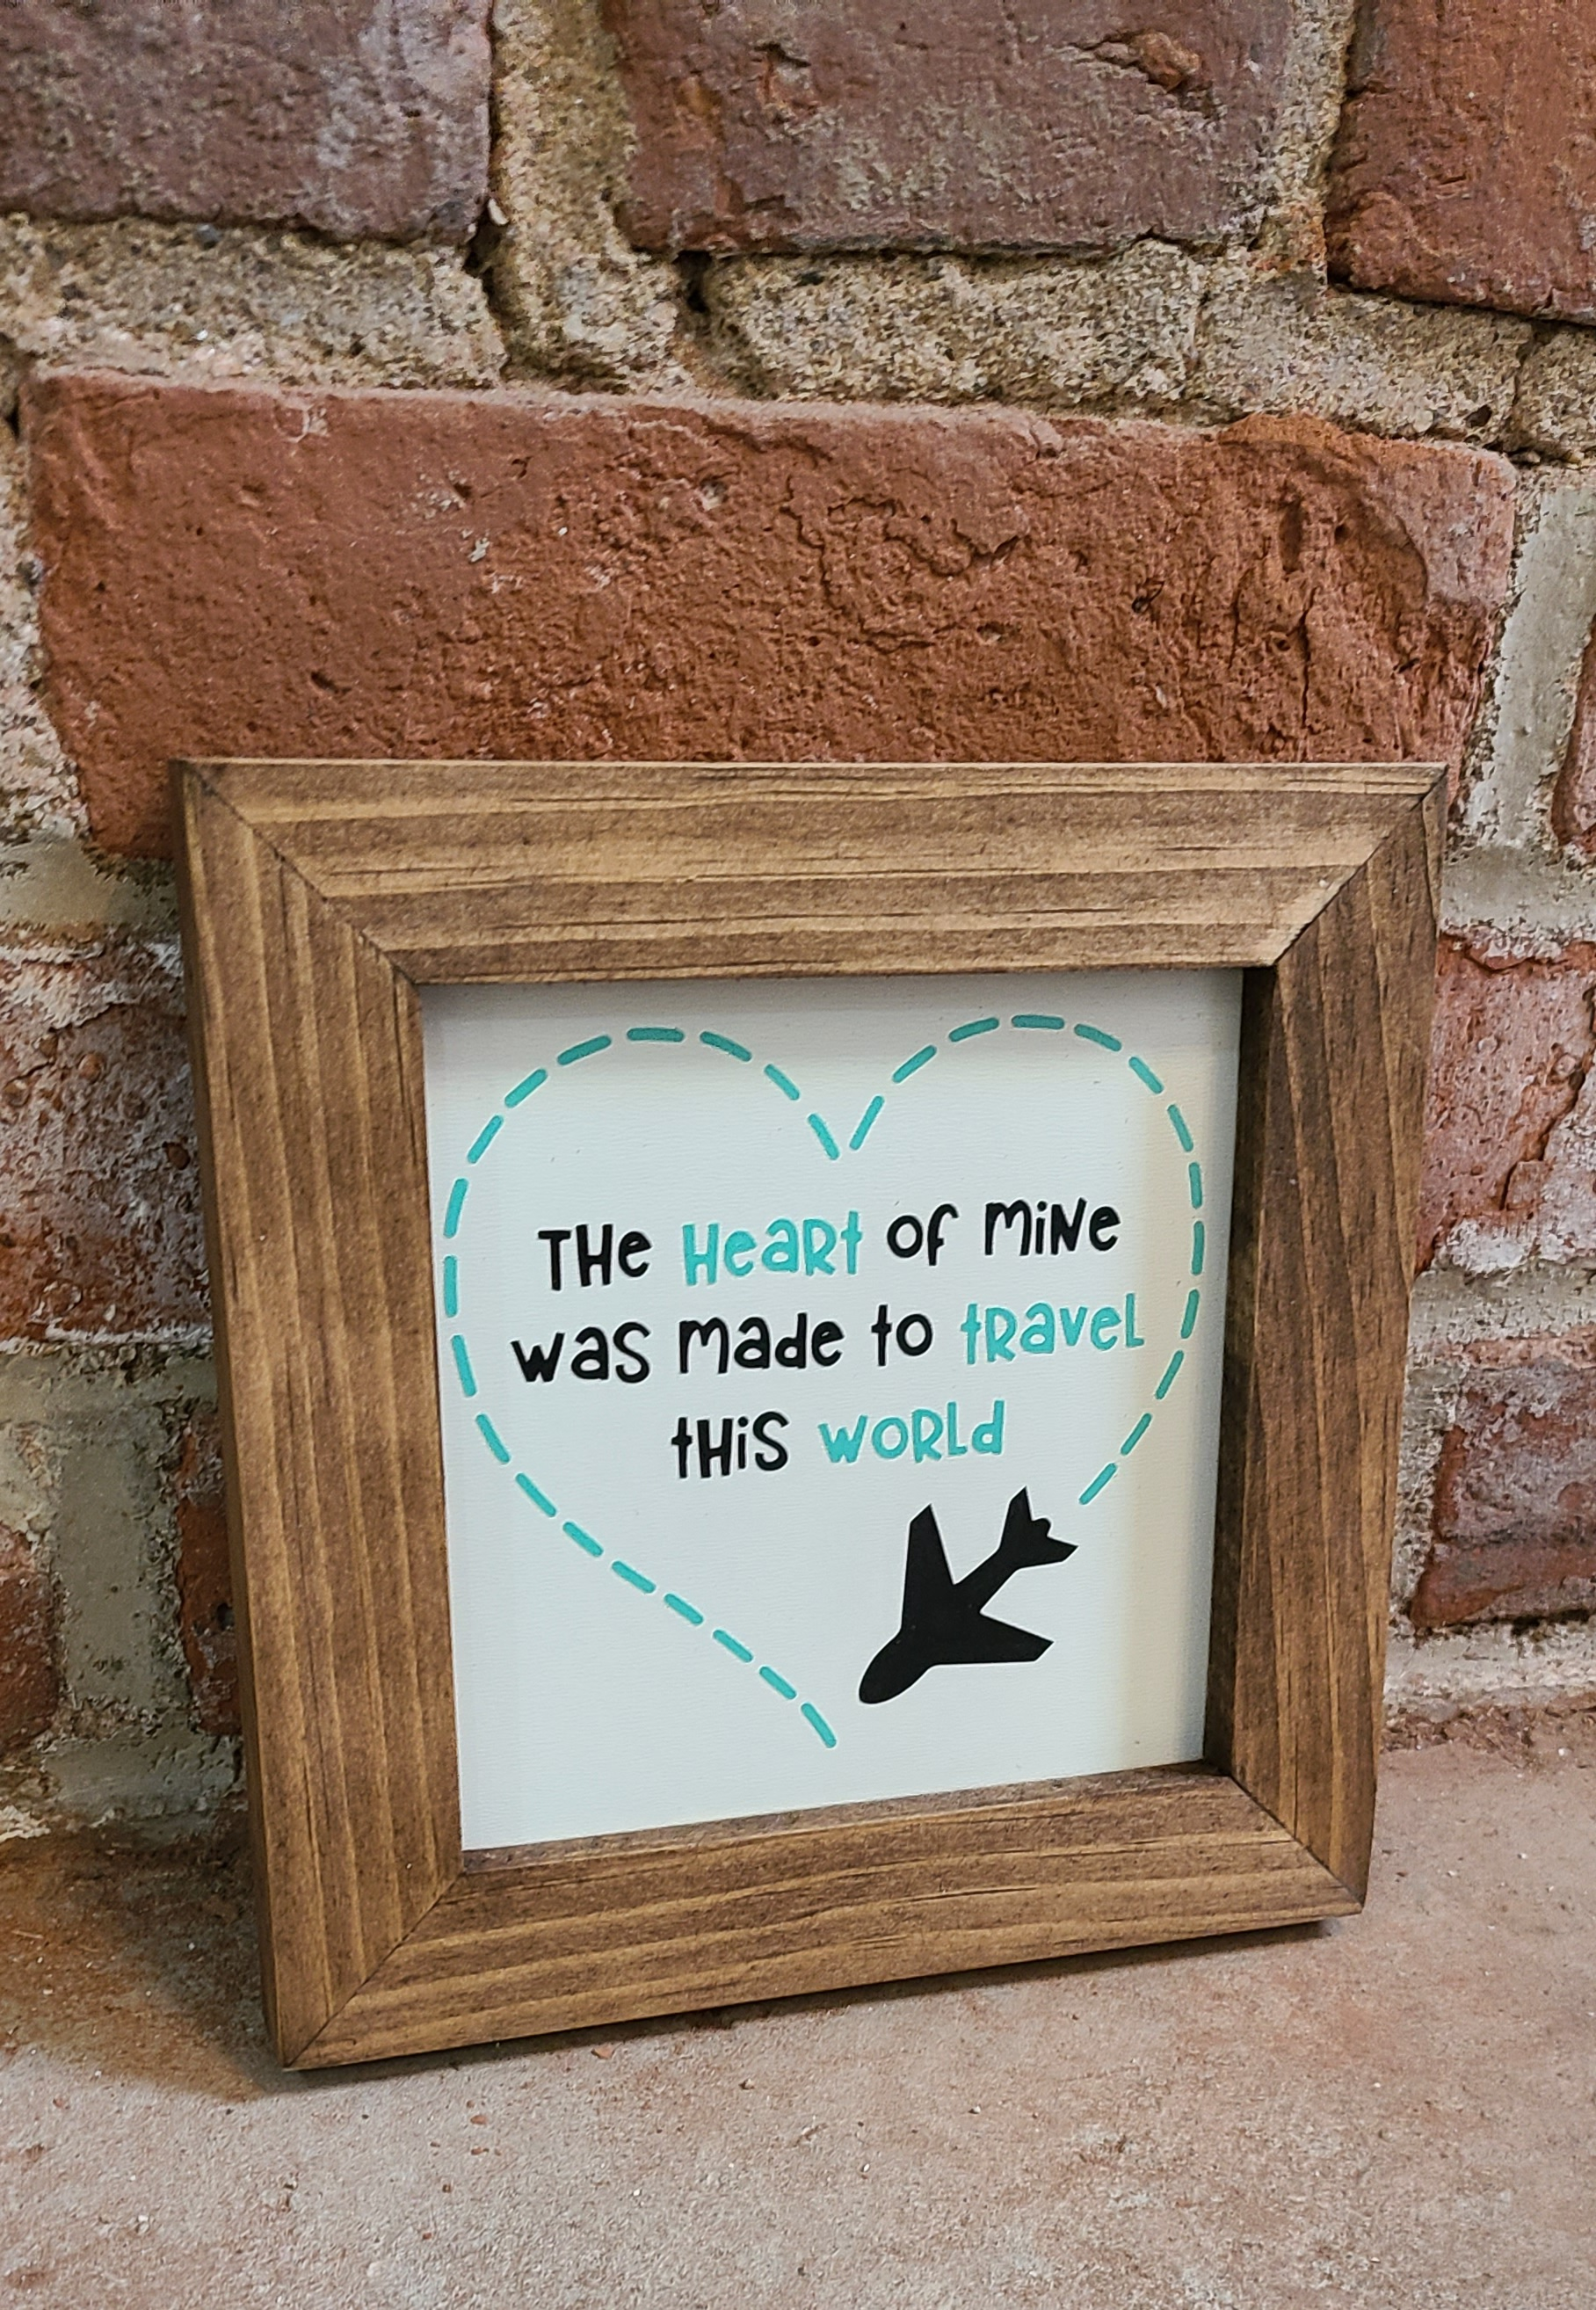 The heart of mine was made to travel this world decorative sign